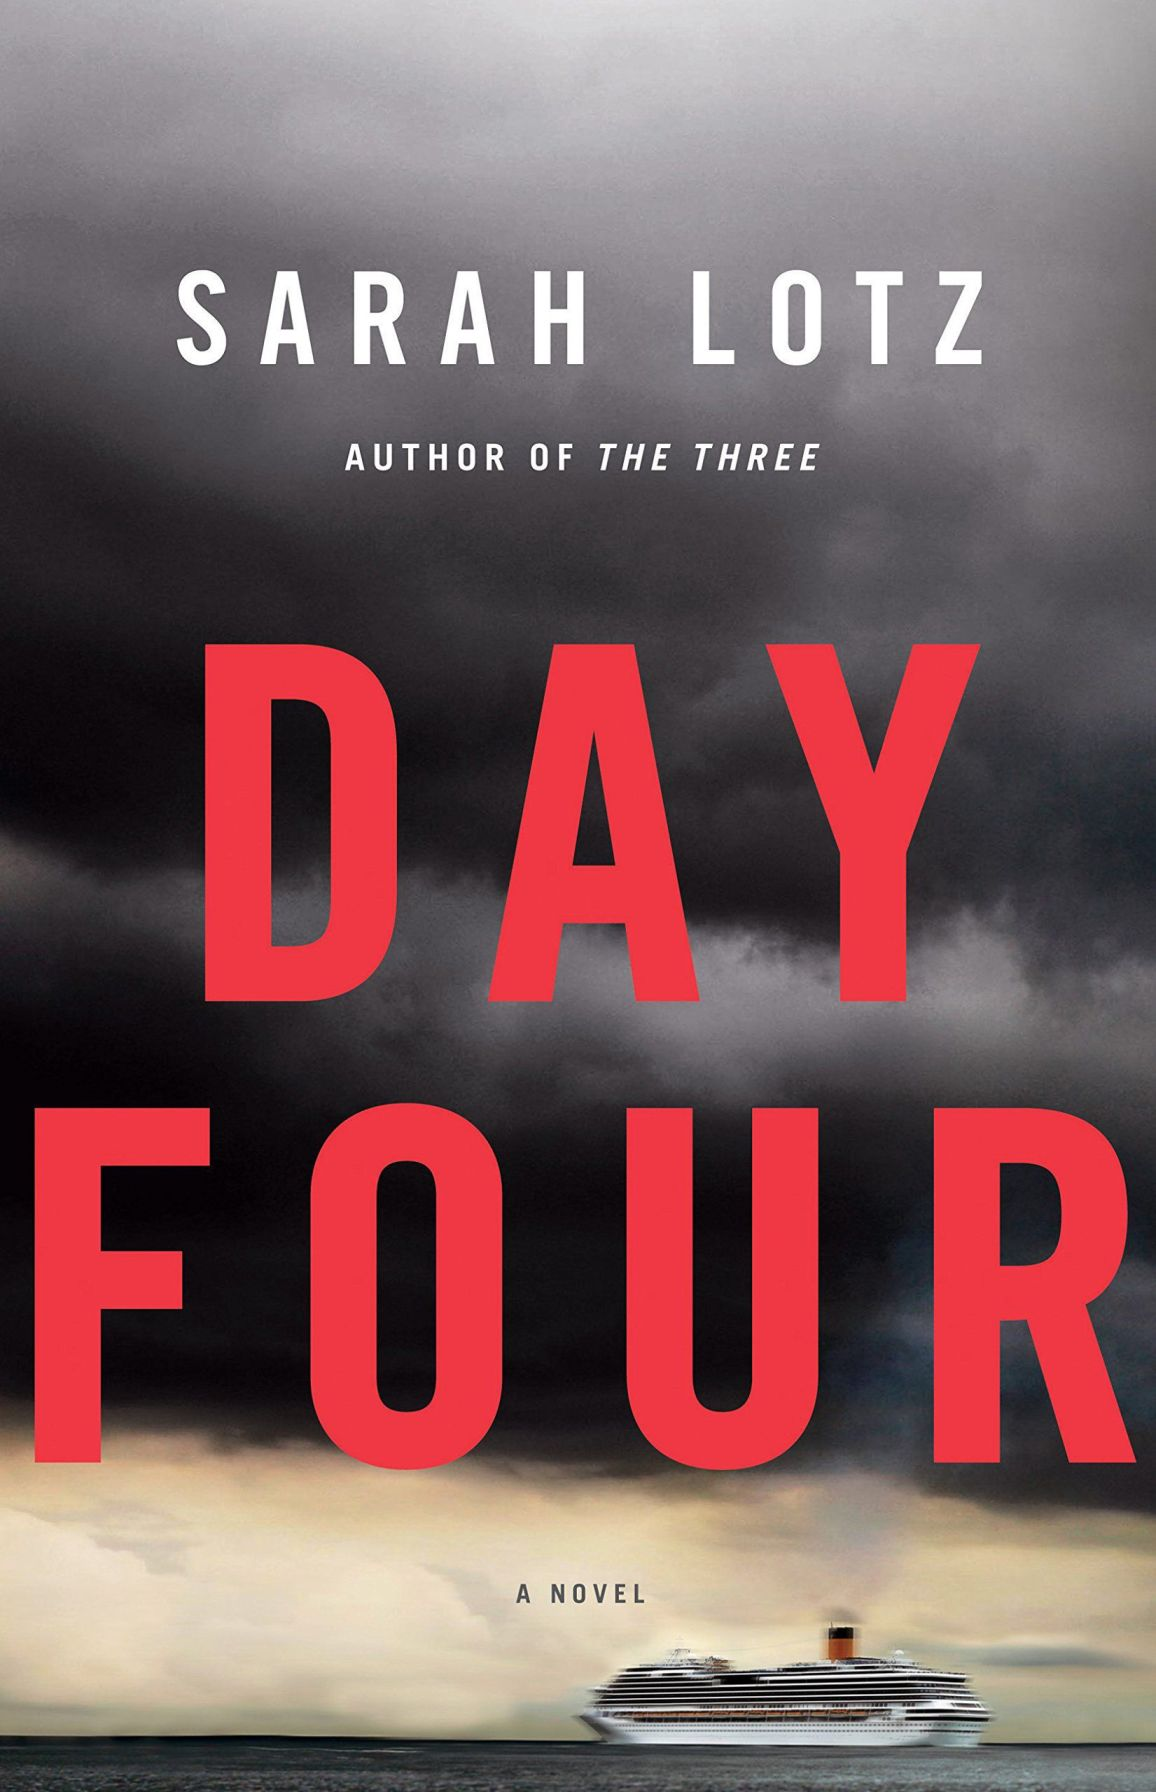 'Day Four' sends a cruise adrift in supernatural waters